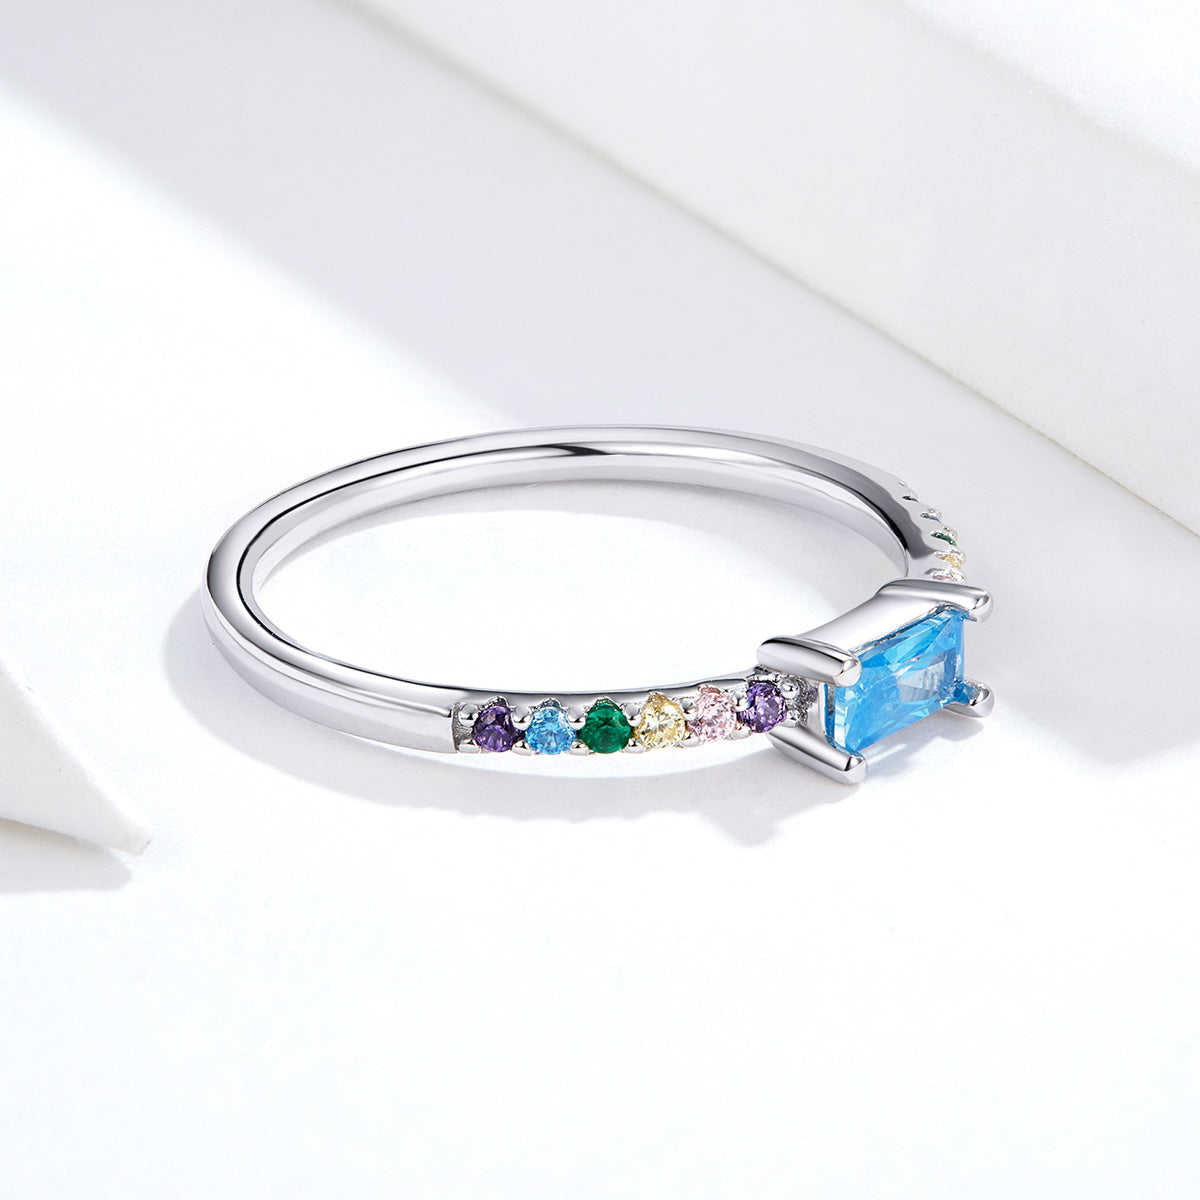 S925 Sterling Silver Meets Rainbow Ring white gold plated cubic zirconia ring